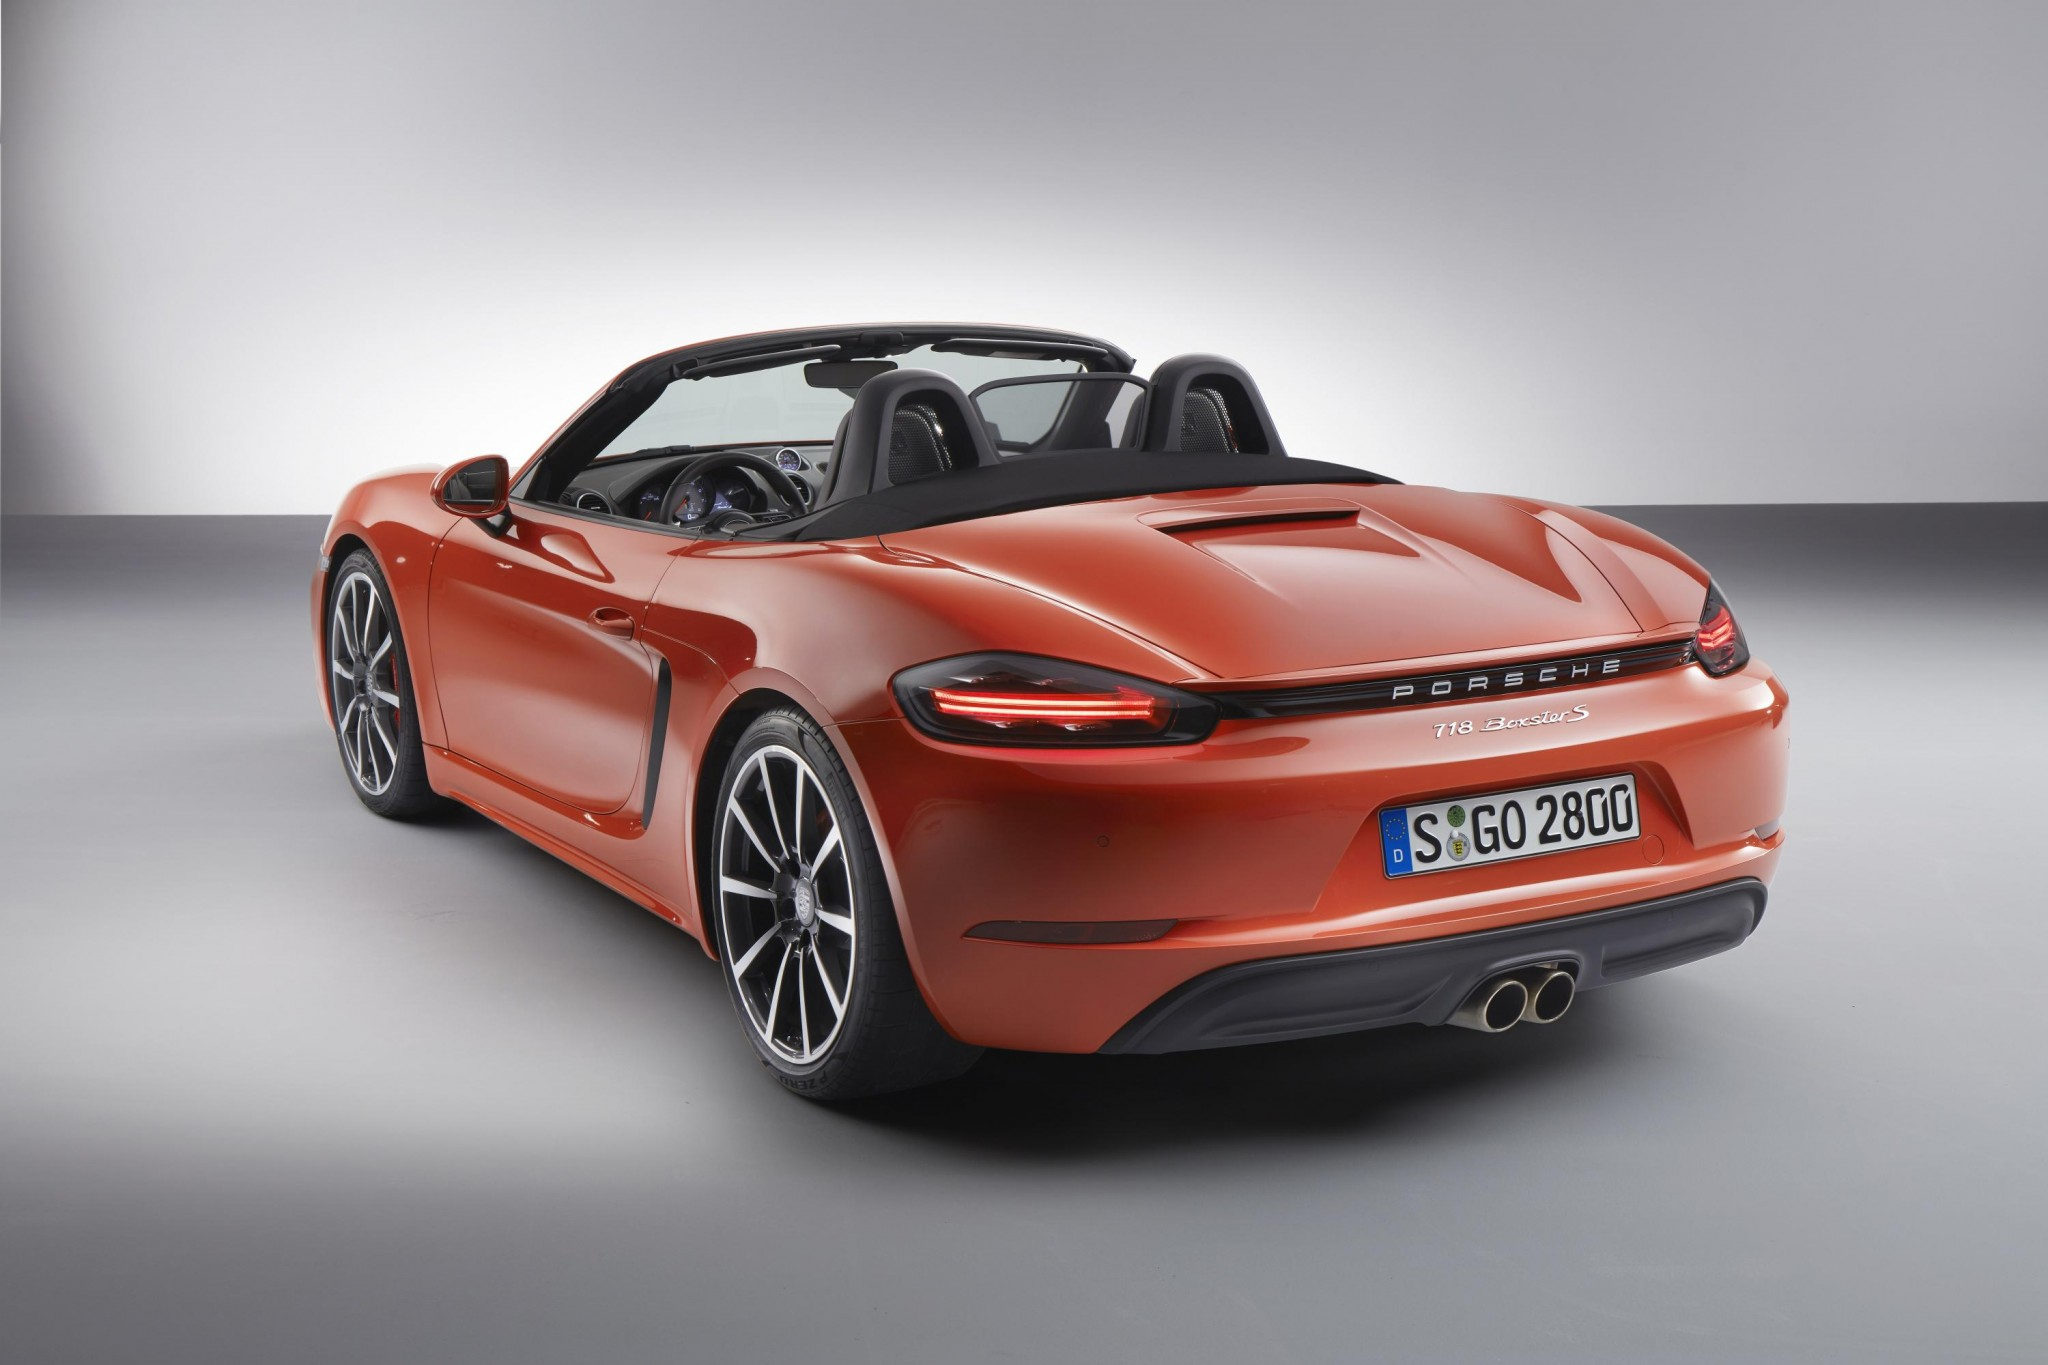 New Porsche 718 Boxster revealed - key details announced | Practical ...